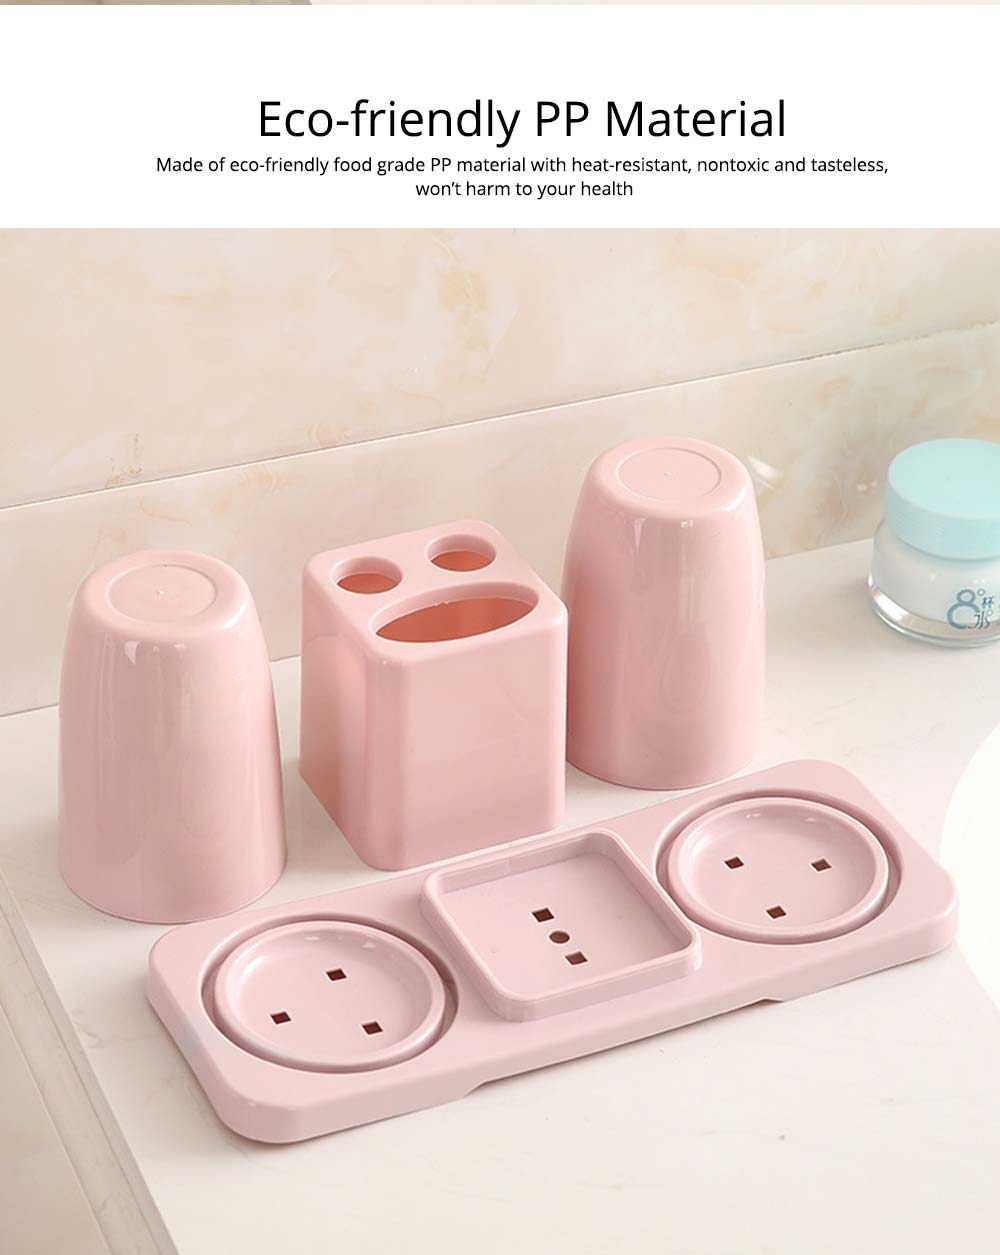 Toothbrush Holder with Cups, Bathroom Toothbrush Cups Organizer Set with Draining Rack for Couples Family Roommates 1